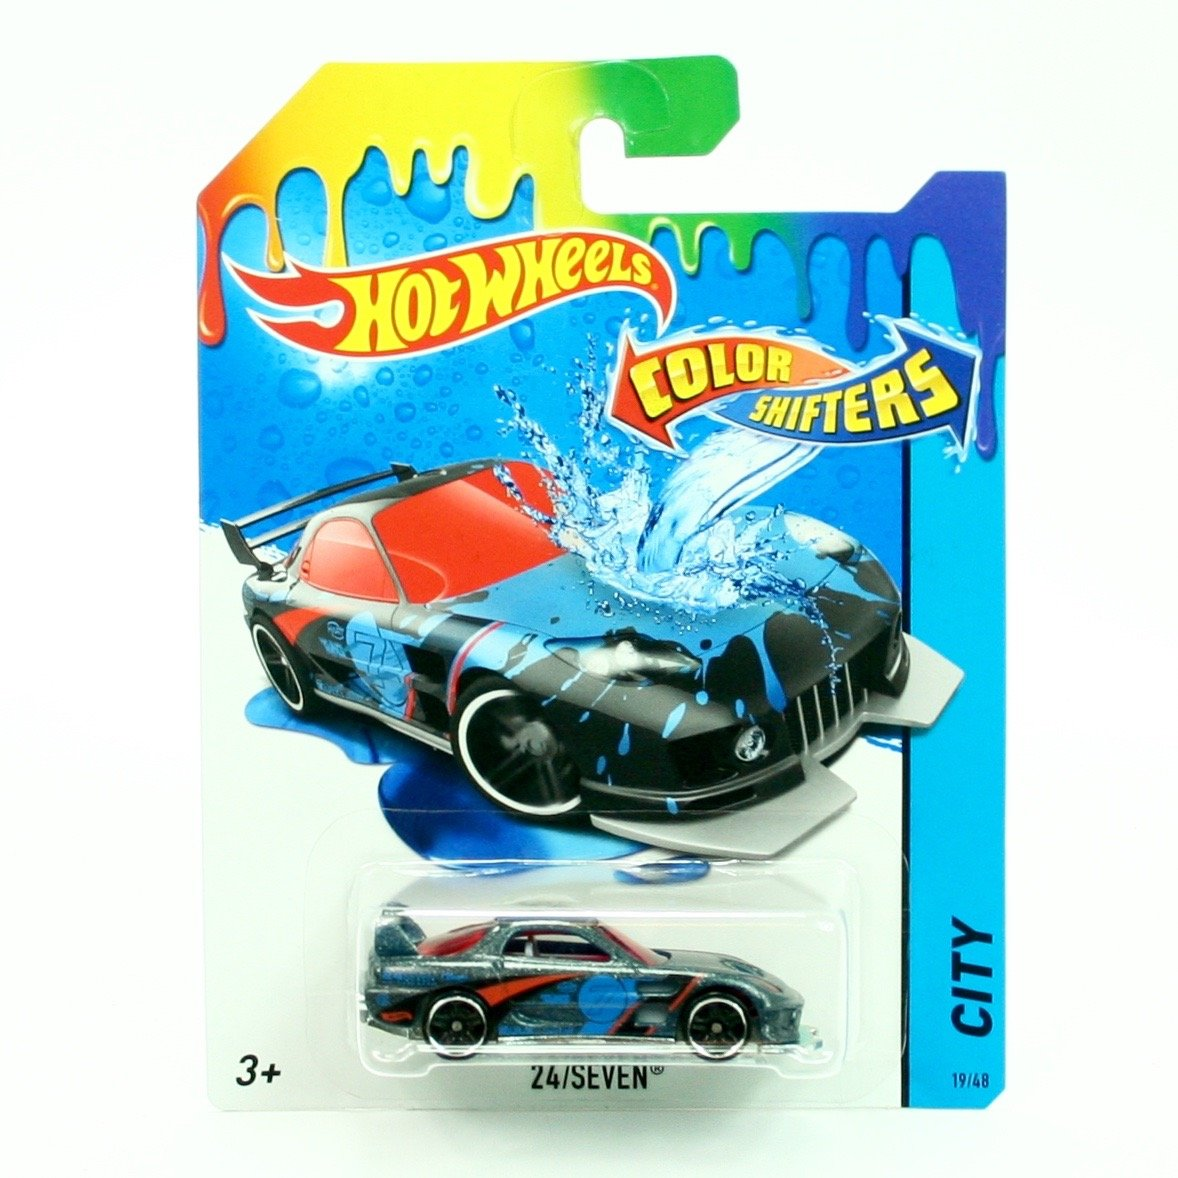 24/SEVEN  COLOR SHIFTERS  2015 Hot Wheels City Series 1:64 Scale Vehicle  19/48 by Hot Wheels